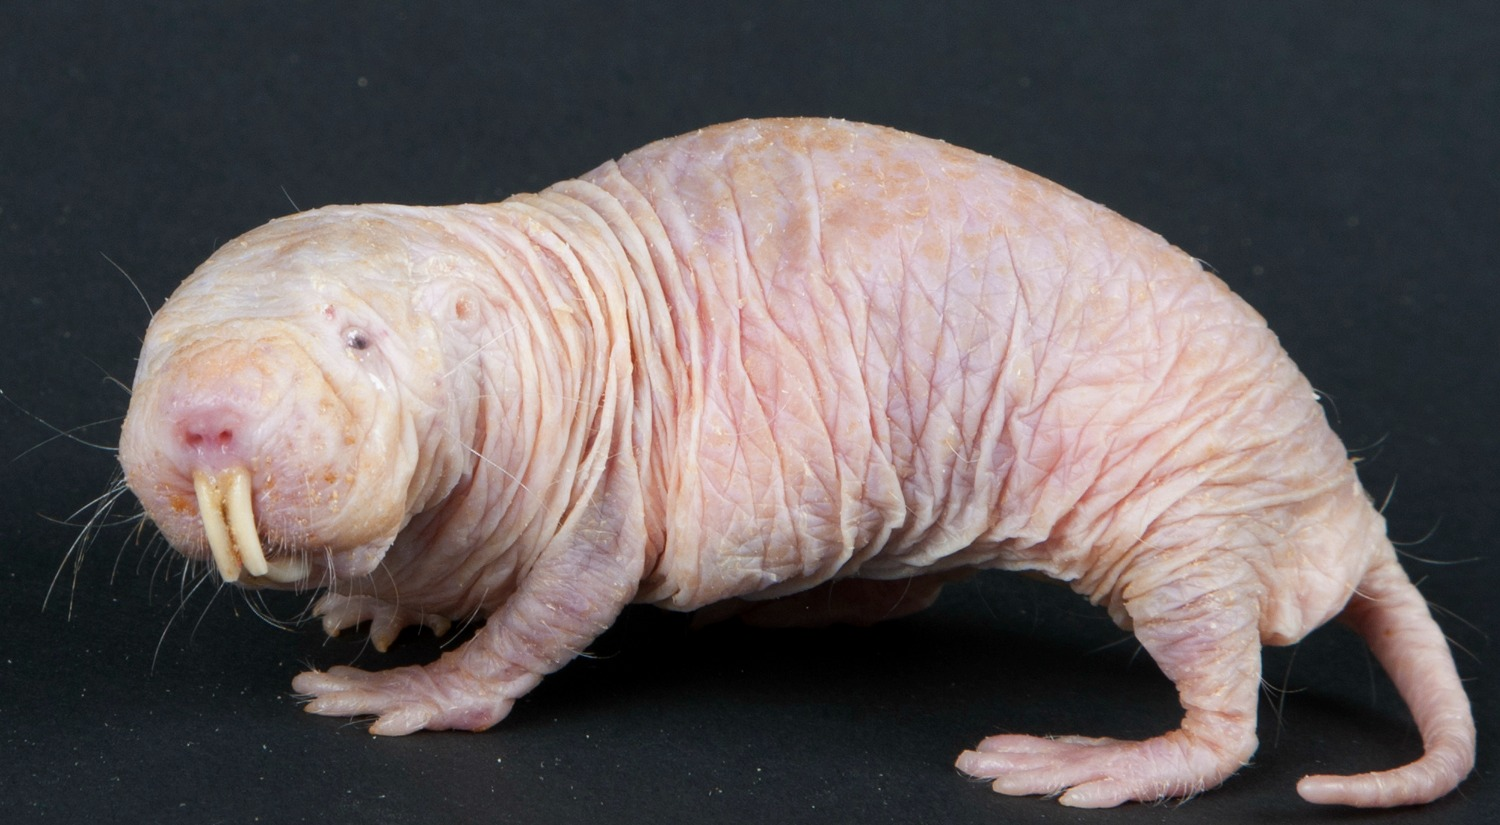 Naked Mole Rat. Credit: Smithsonian's National Zoo/flickr, CC BY-NC-ND